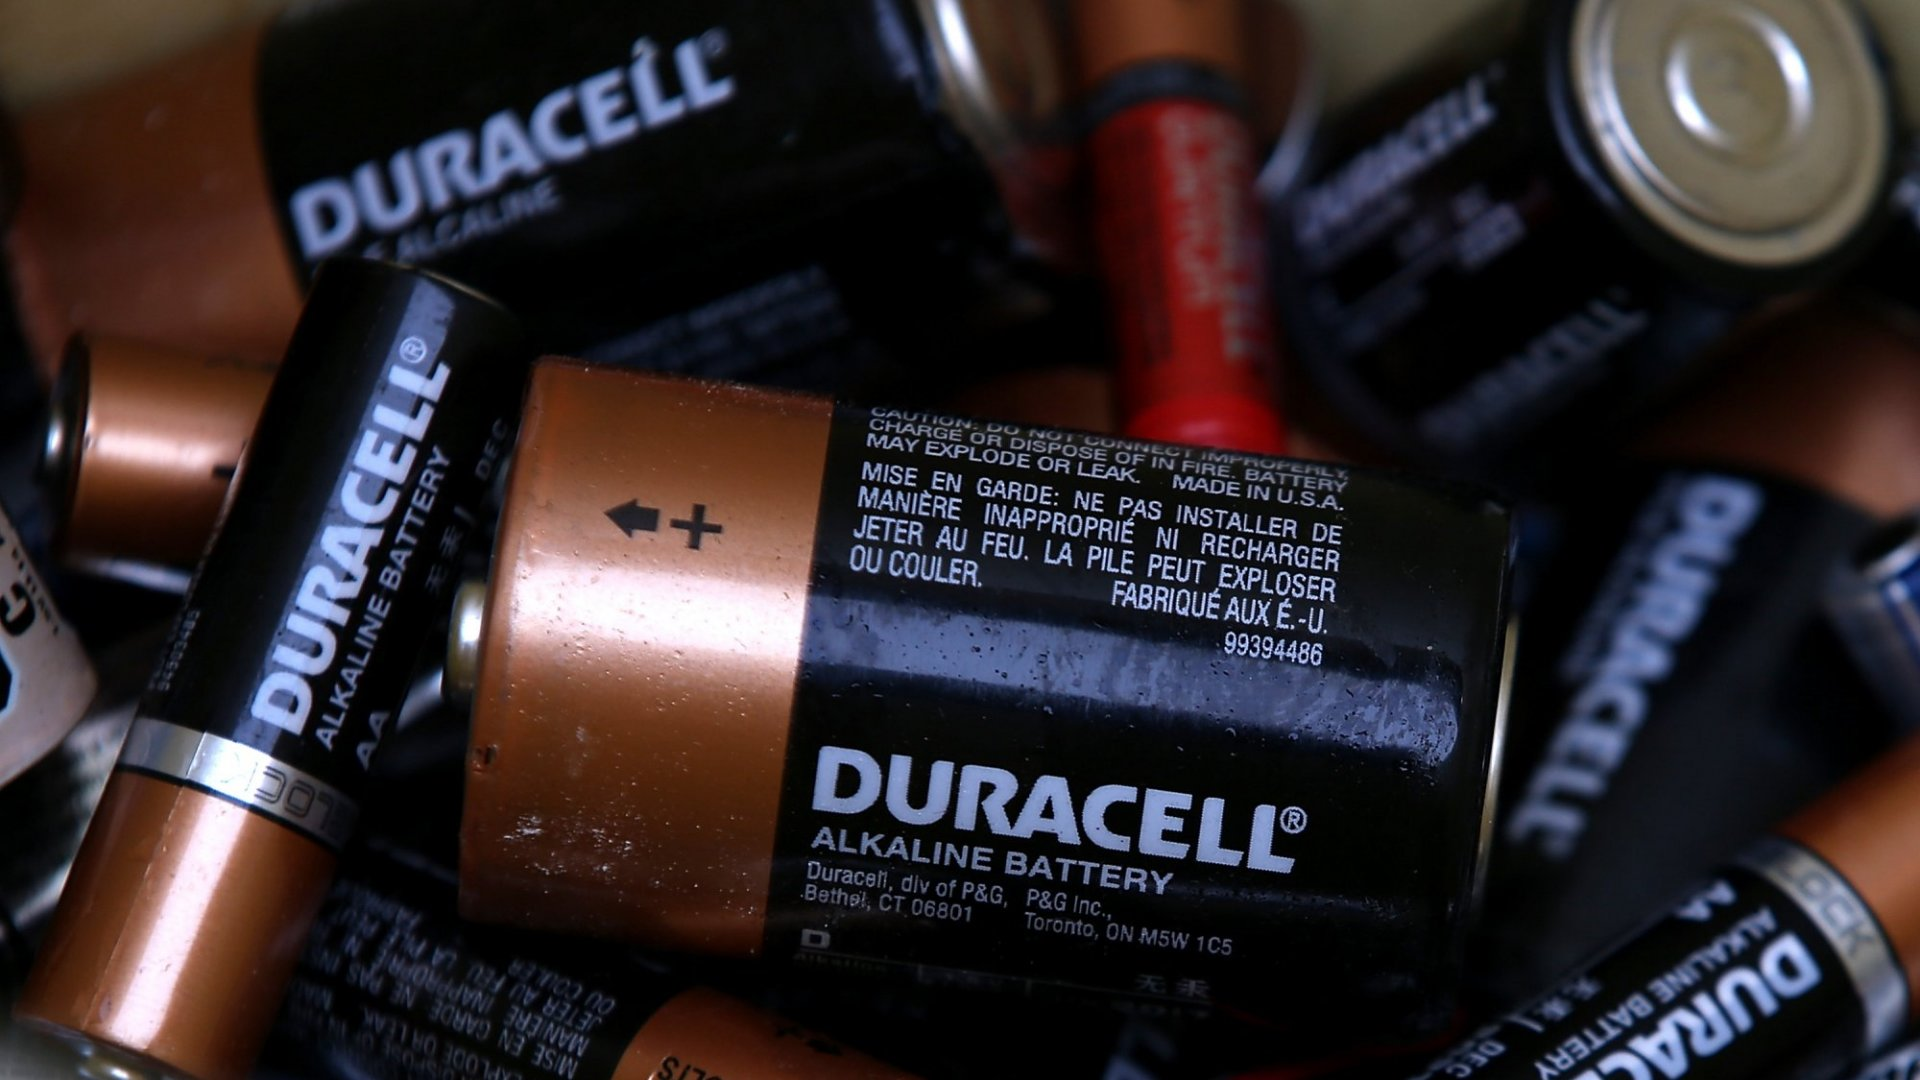 Duracell's Edgy Super Bowl Tweet Just Reinforced Some Major Marketing Lessons